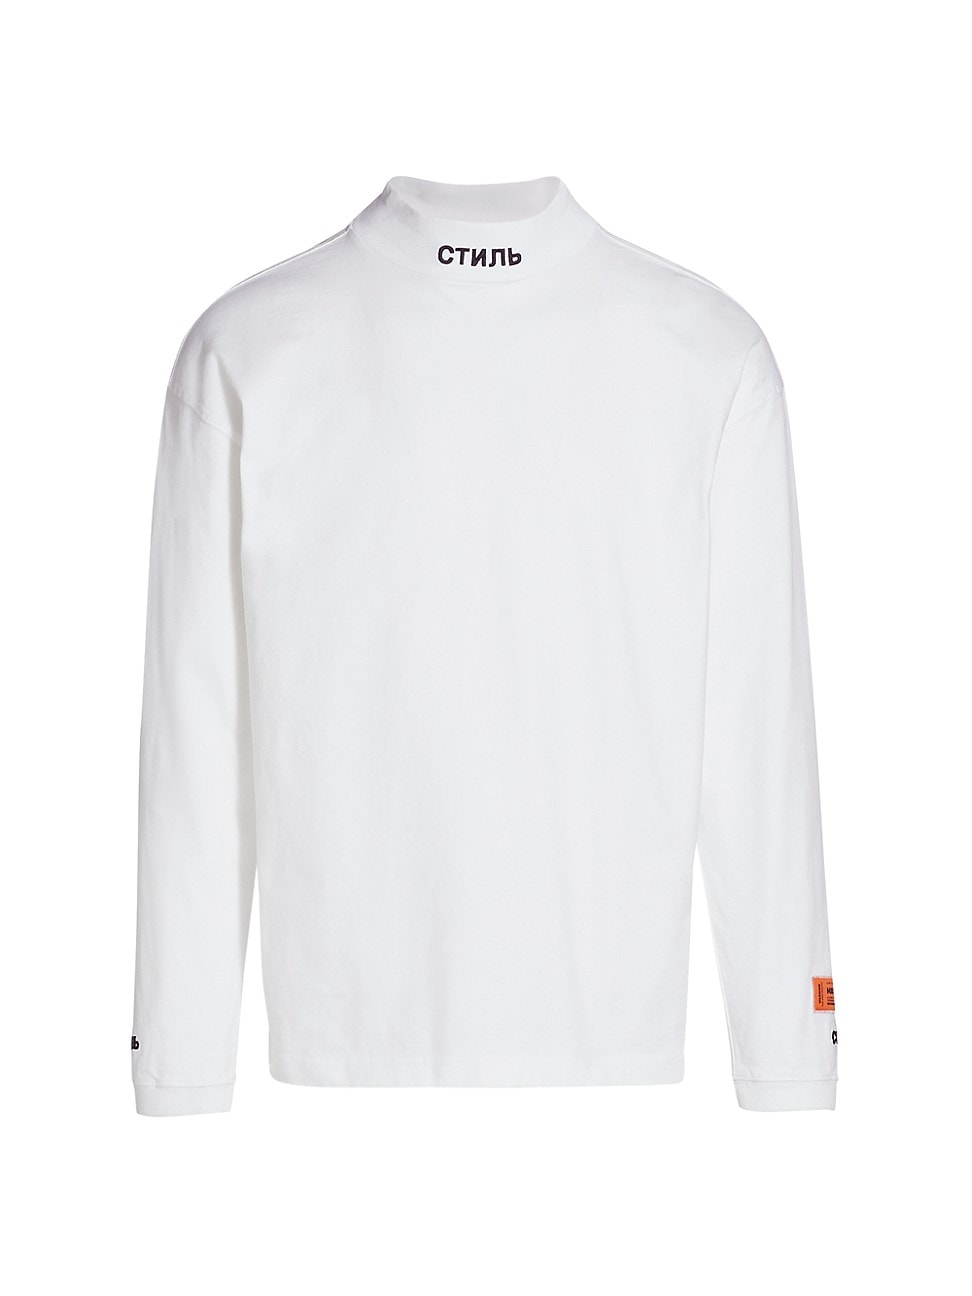 Heron Preston Cottons MEN'S MOCKNECK LONG-SLEEVE T-SHIRT